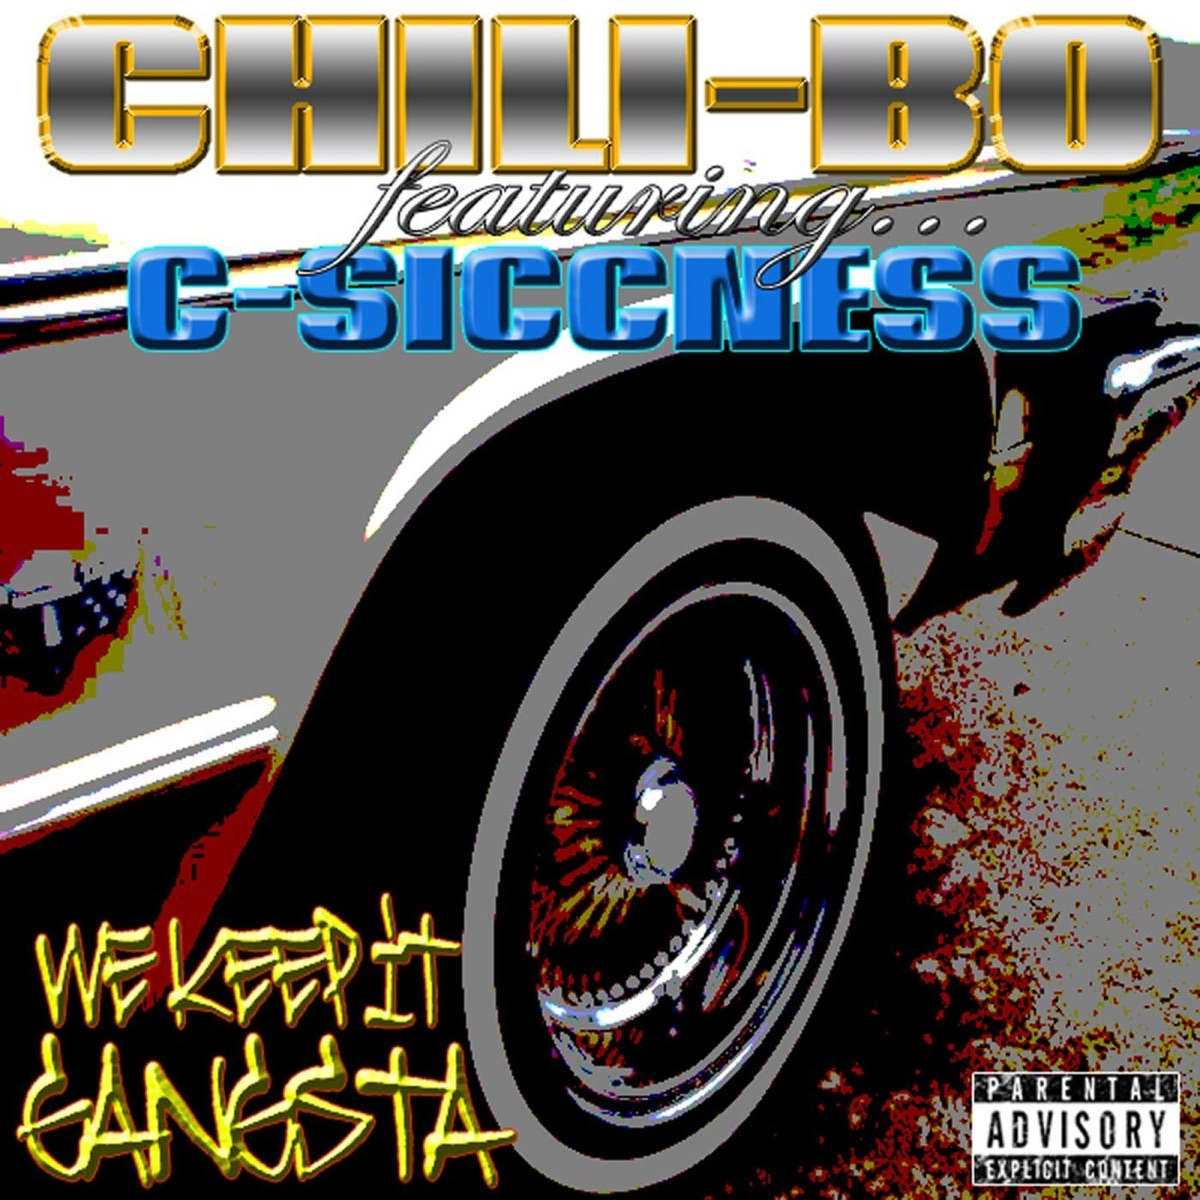 We Keep It Gangsta feat C-Siccness - Single Chili-Bo CD cover